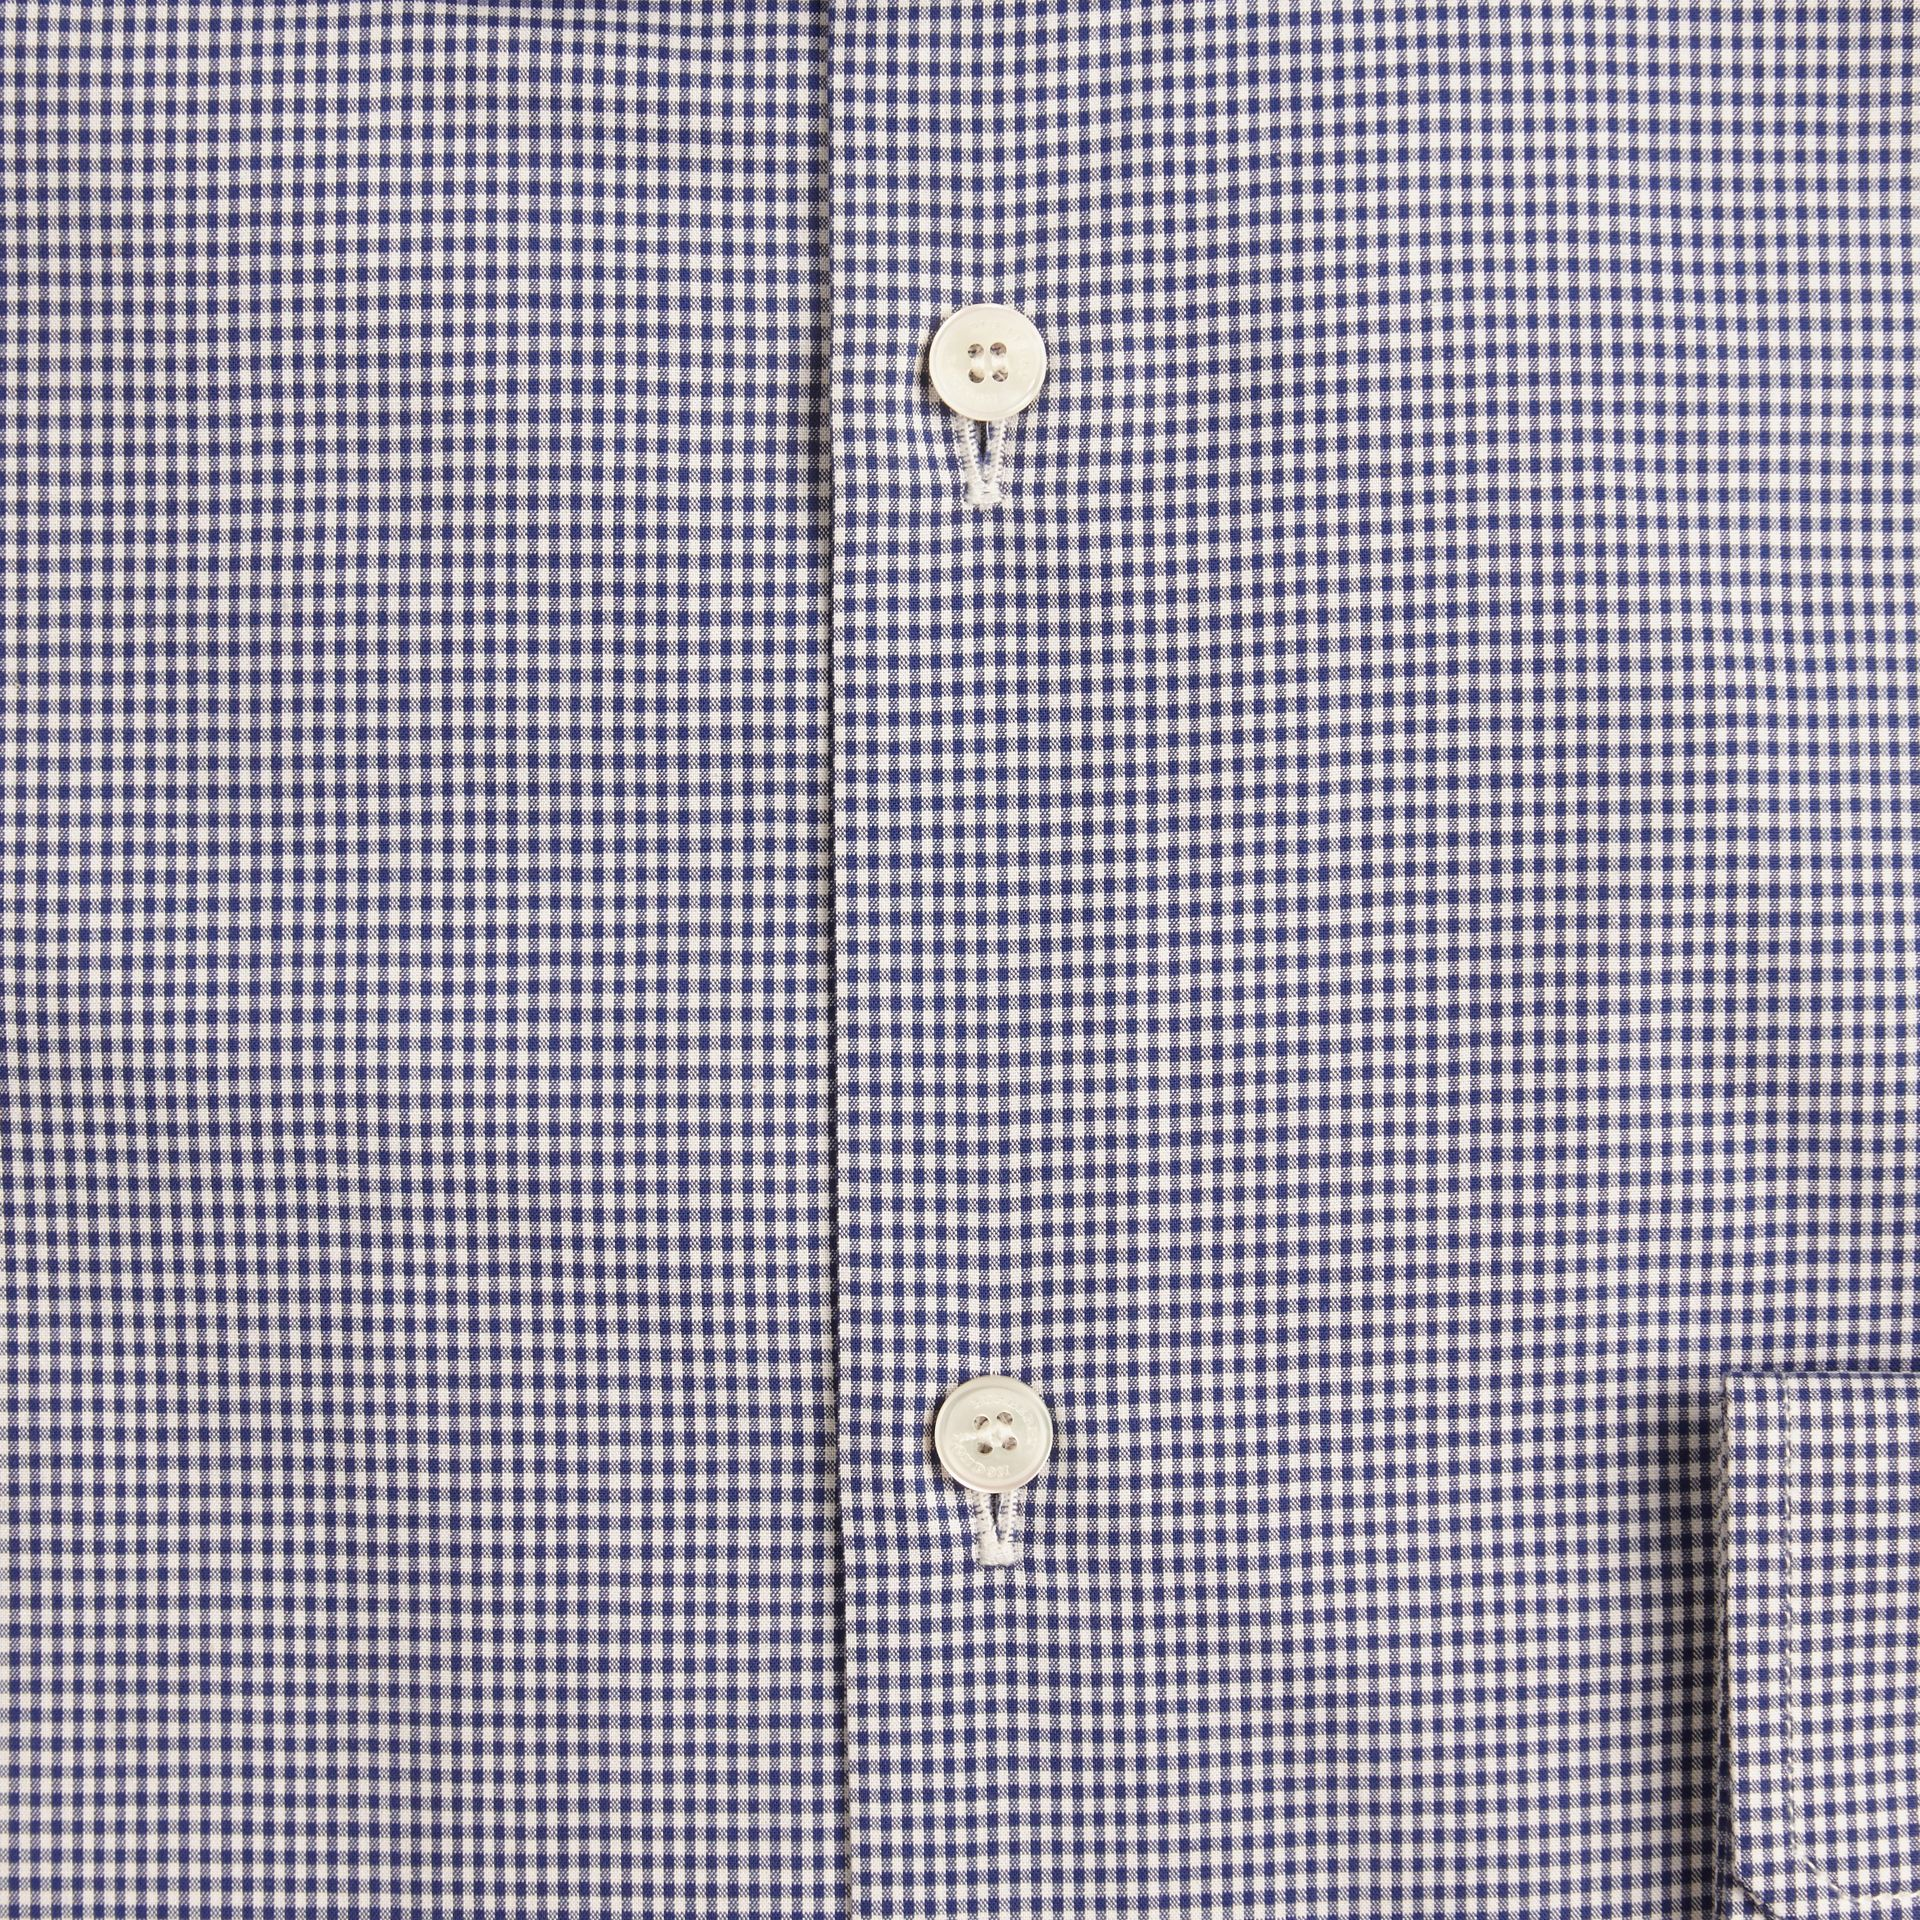 Slim Fit Gingham Cotton Poplin Shirt in Dark Empire Blue - gallery image 2